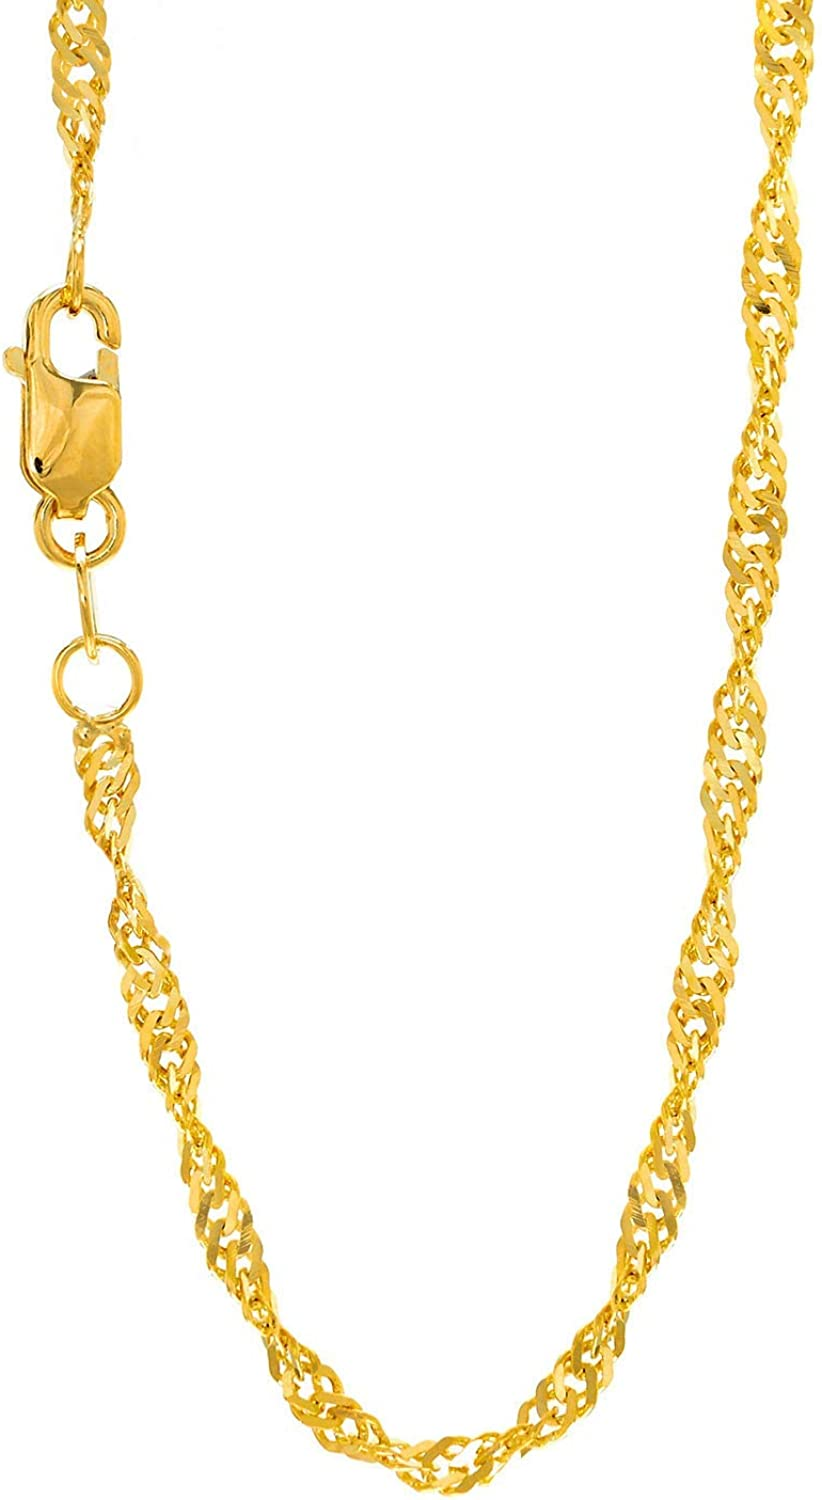 JewelStop 10K Solid Gold Yellow Or White 1.5mm Singapore Rope Sparkle Necklace Chain 16